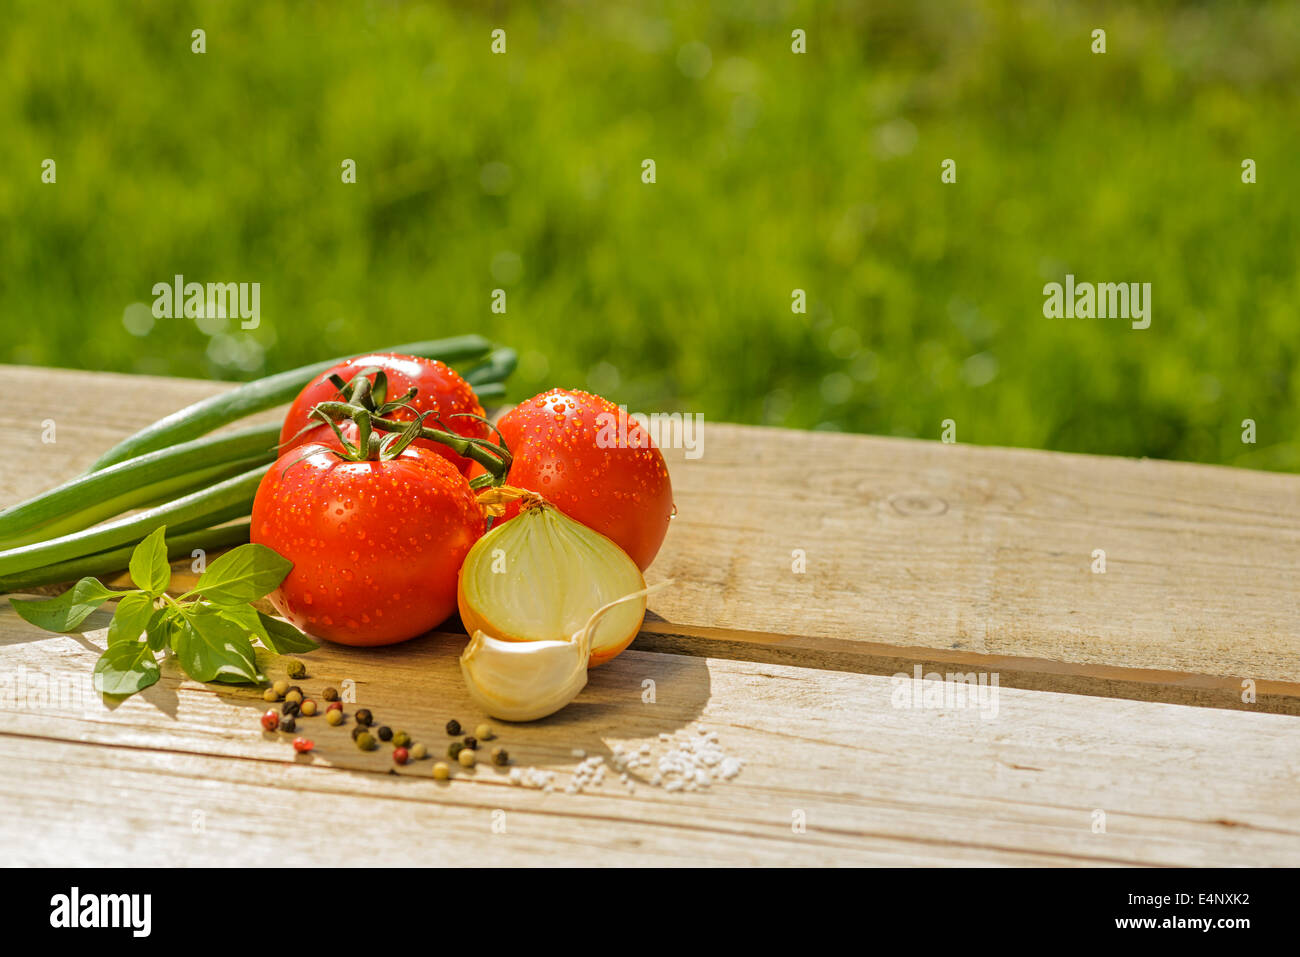 fresh tomatoes leeks onions garlic basil salt pepper red green wooden table outside in the open air sun summer - Stock Image